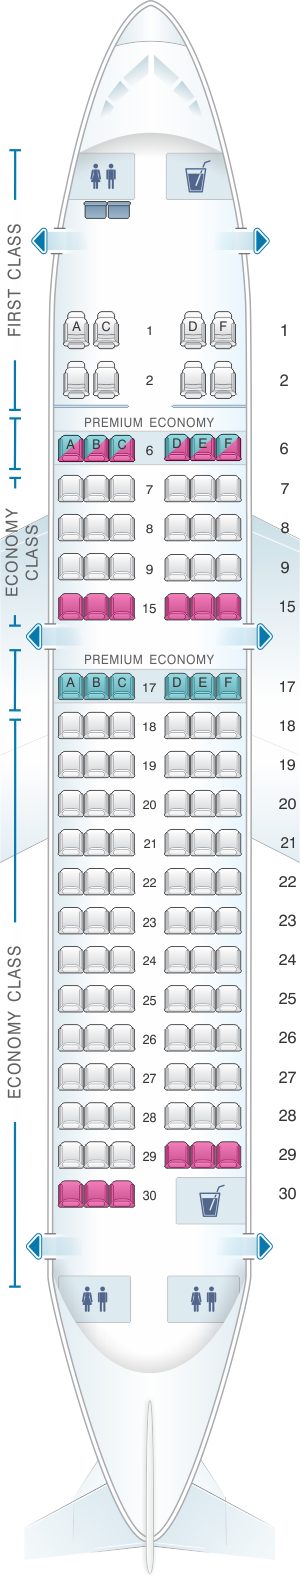 Seat map for Alaska Airlines - Horizon Air Airbus A319 112